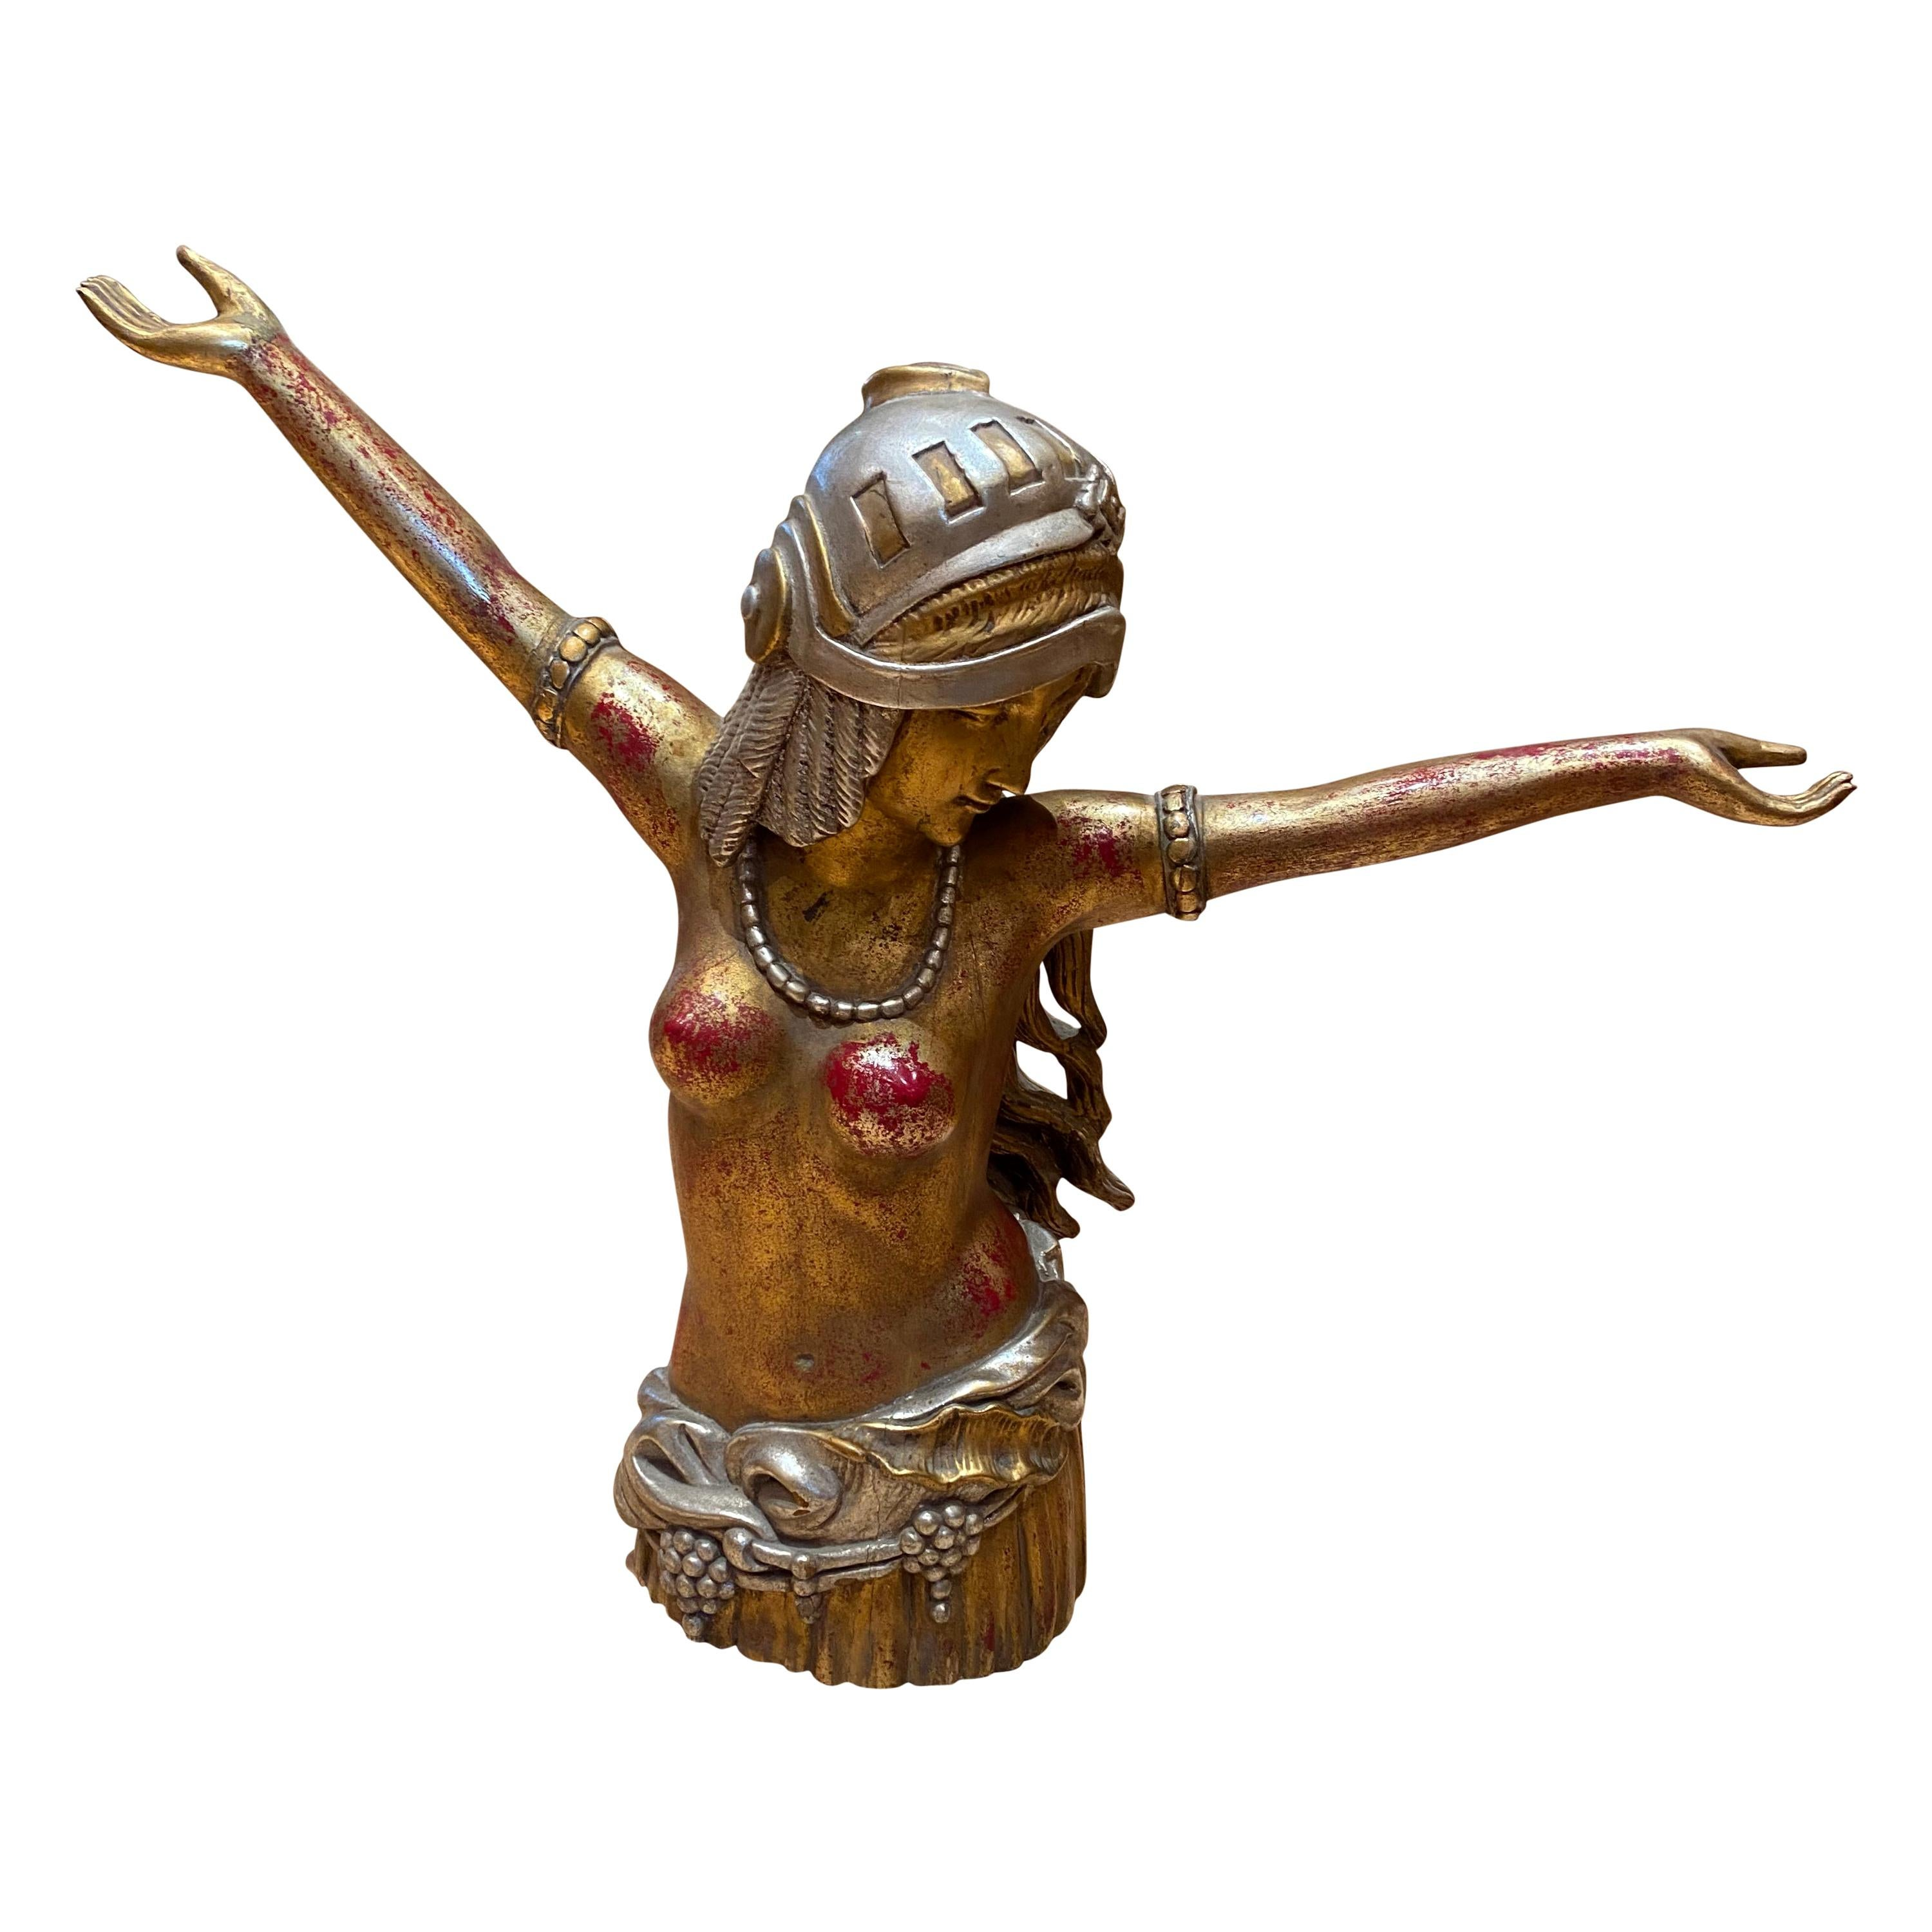 Polychrome Carved Wooden Figure of an Art Deco Style Lady Dancing, 20th Century